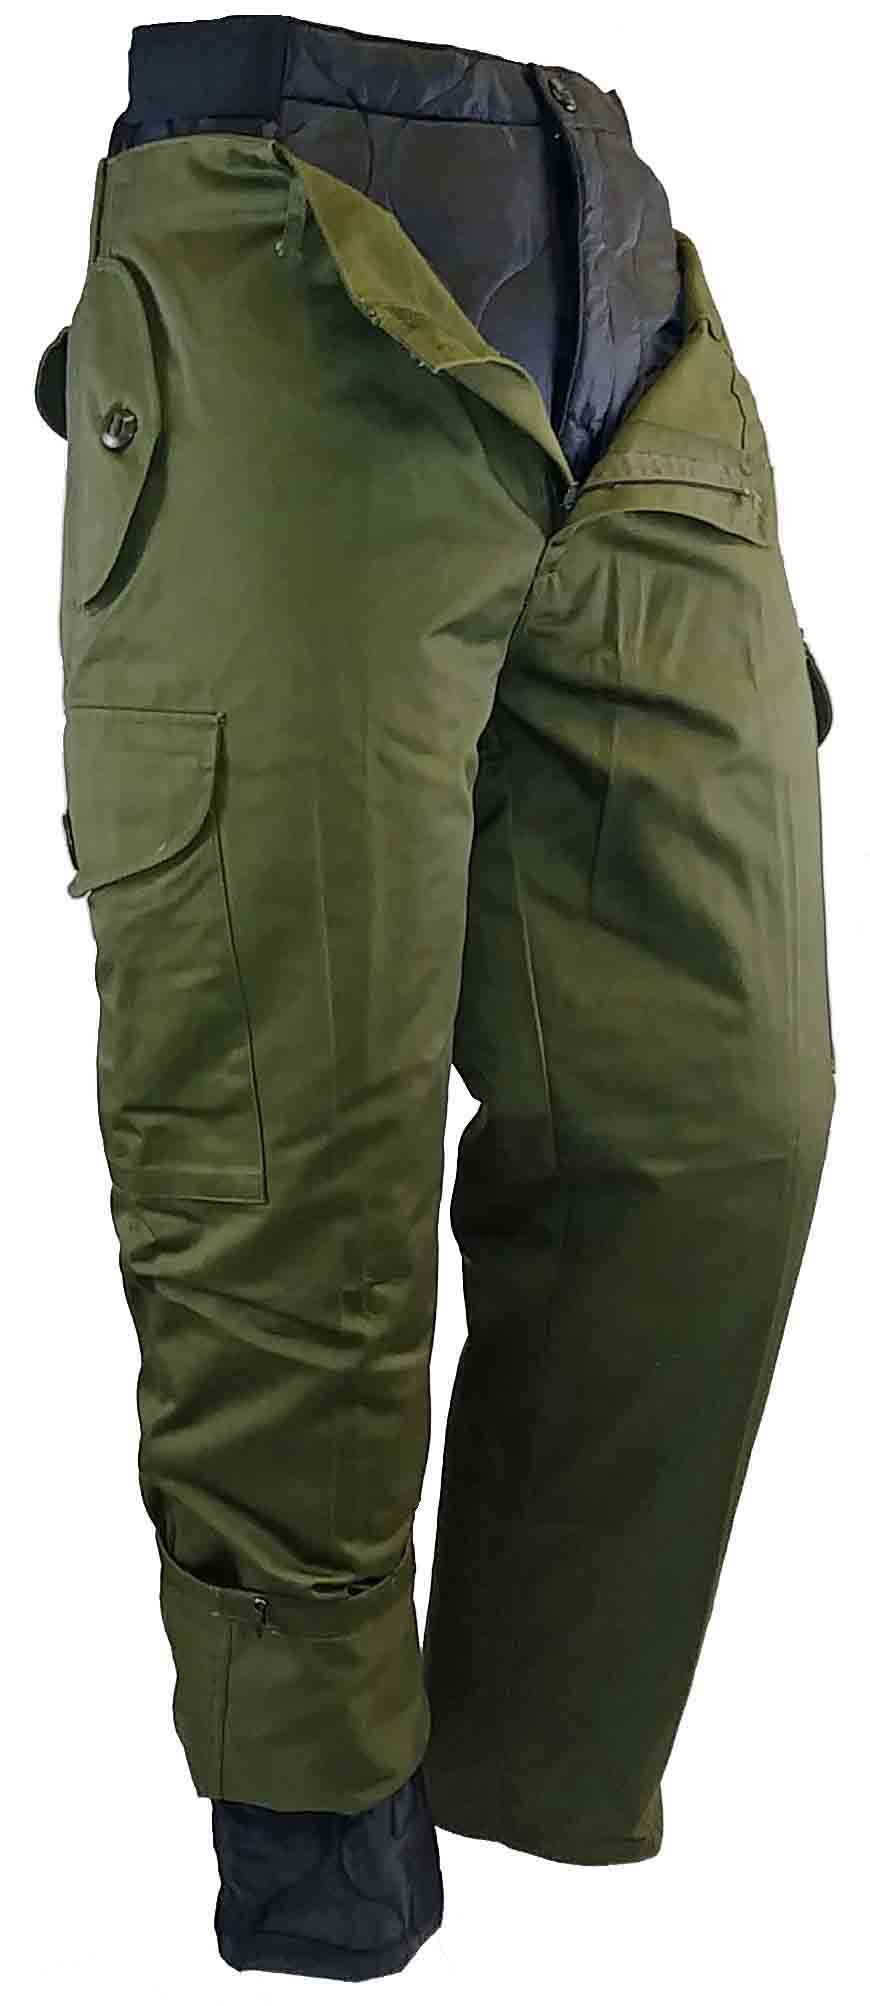 OLIVE DRAB COMBAT STYLE WINTER PANT